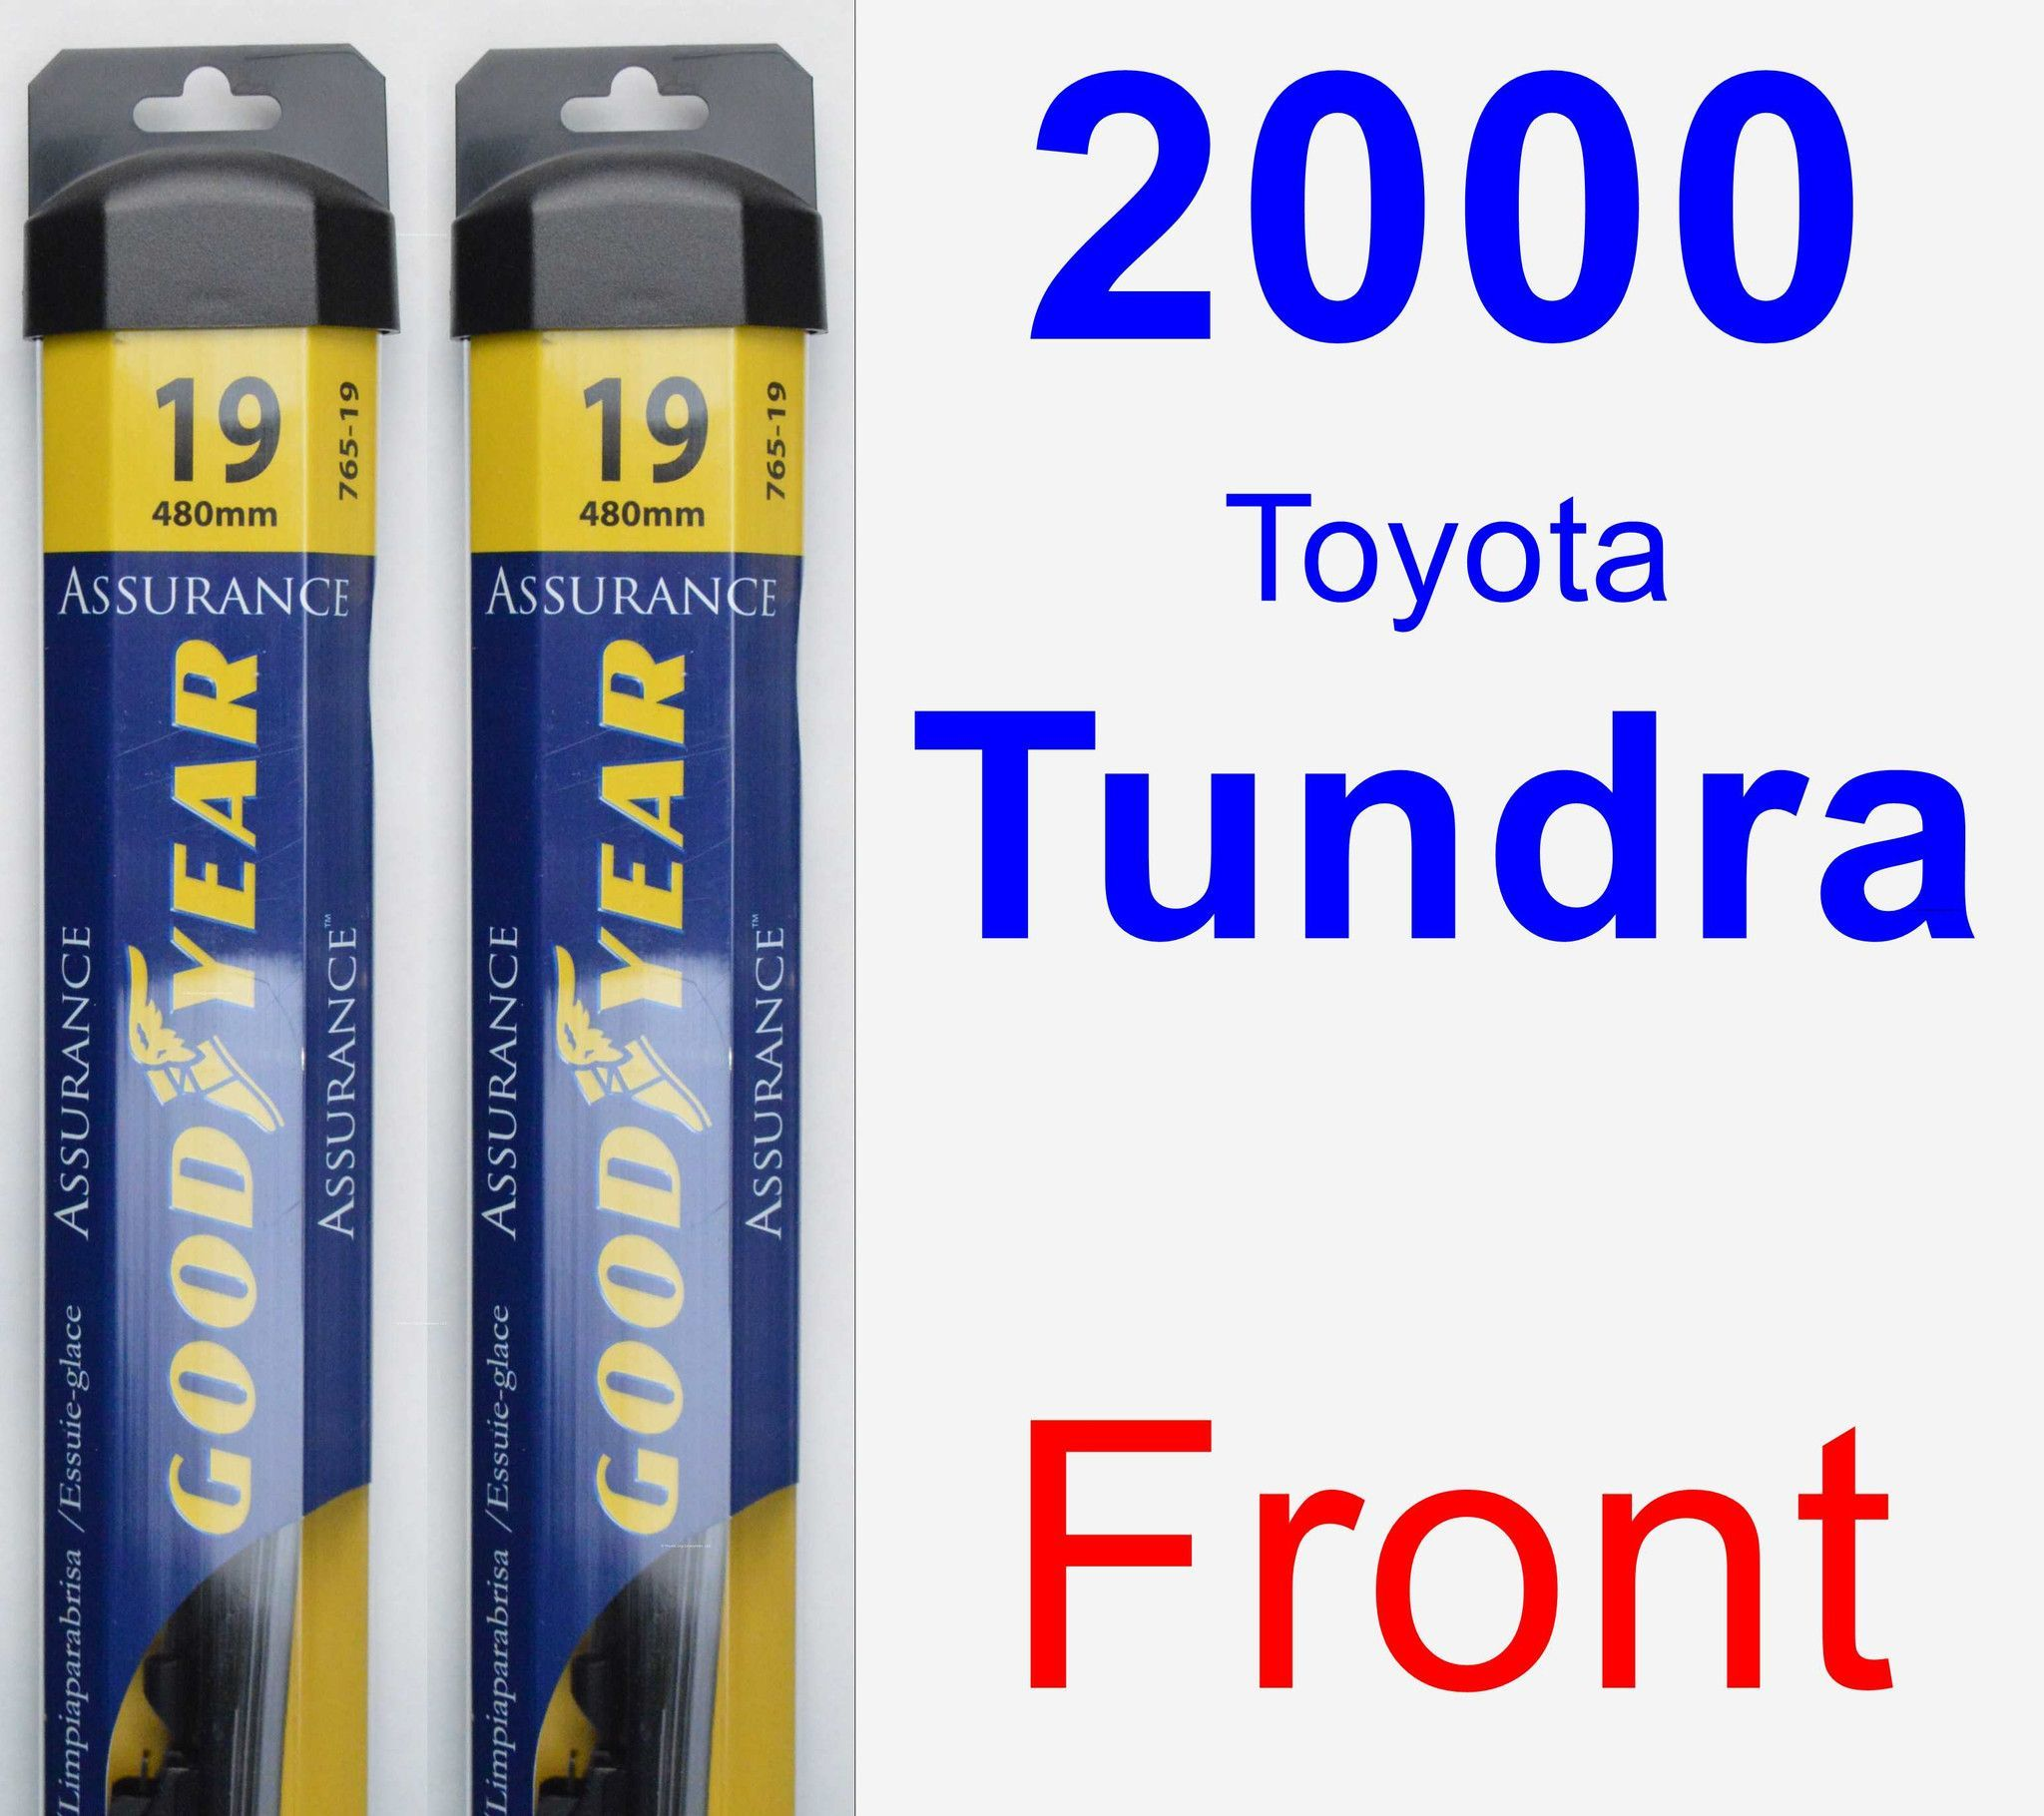 Front Wiper Blade Pack For 2000 Toyota Tundra Assurance Car Windshield Wipers Wiper Blades Subaru